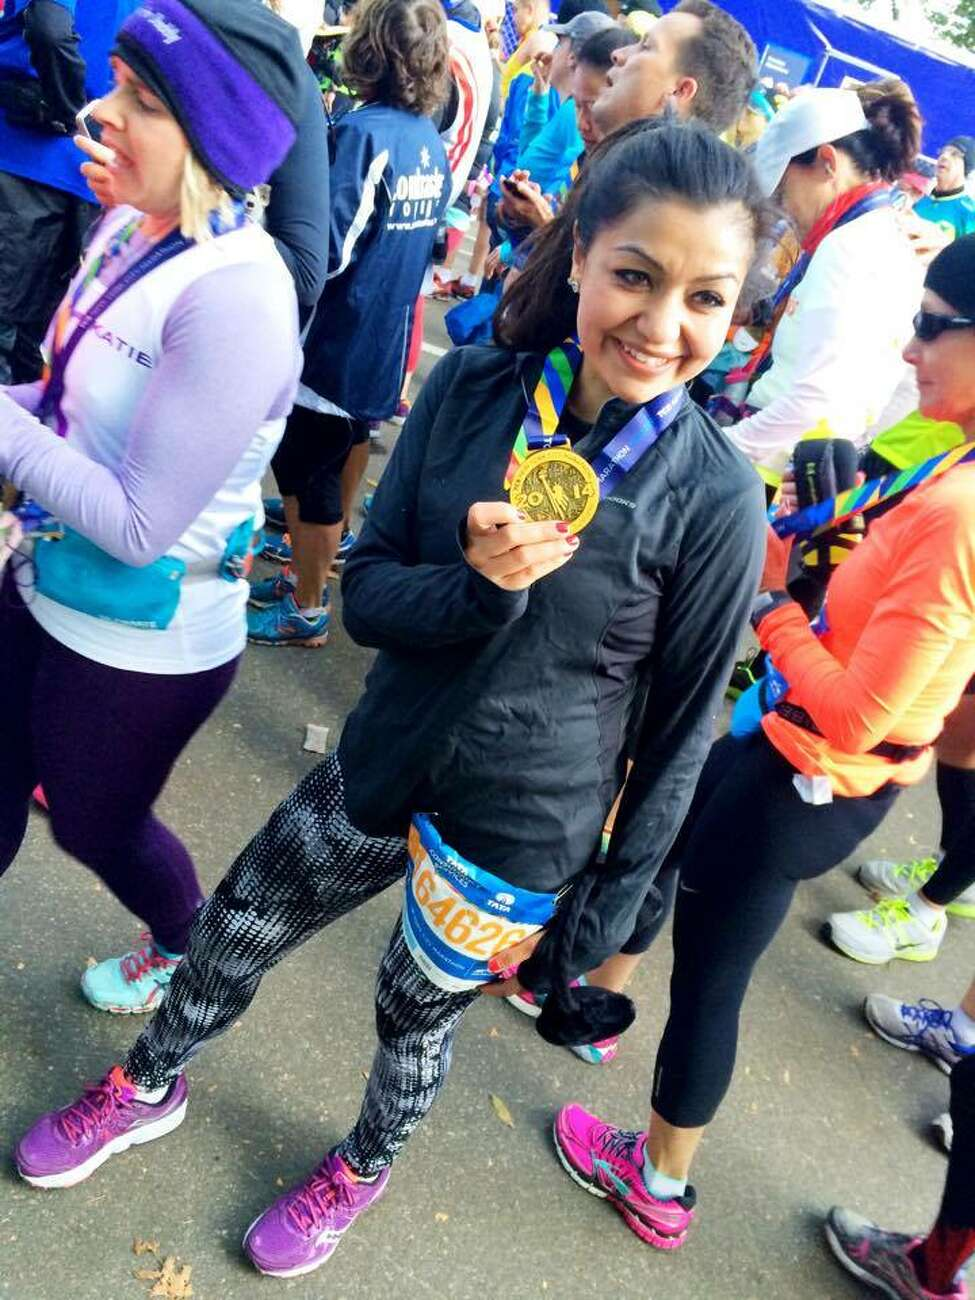 Sugam Langer, who started as a kid with 15-Love, shows her medal after completing the 2014 New York City Marathon. Langer is a graduate of Albany Academy for Girls and Siena College, where she played collegiate tennis, and now works as a lawyer at a consulting firm in New York City. She raised about $9,000 for 15-Love by finishing the marathon. (Photo courtesy of 15-Love)